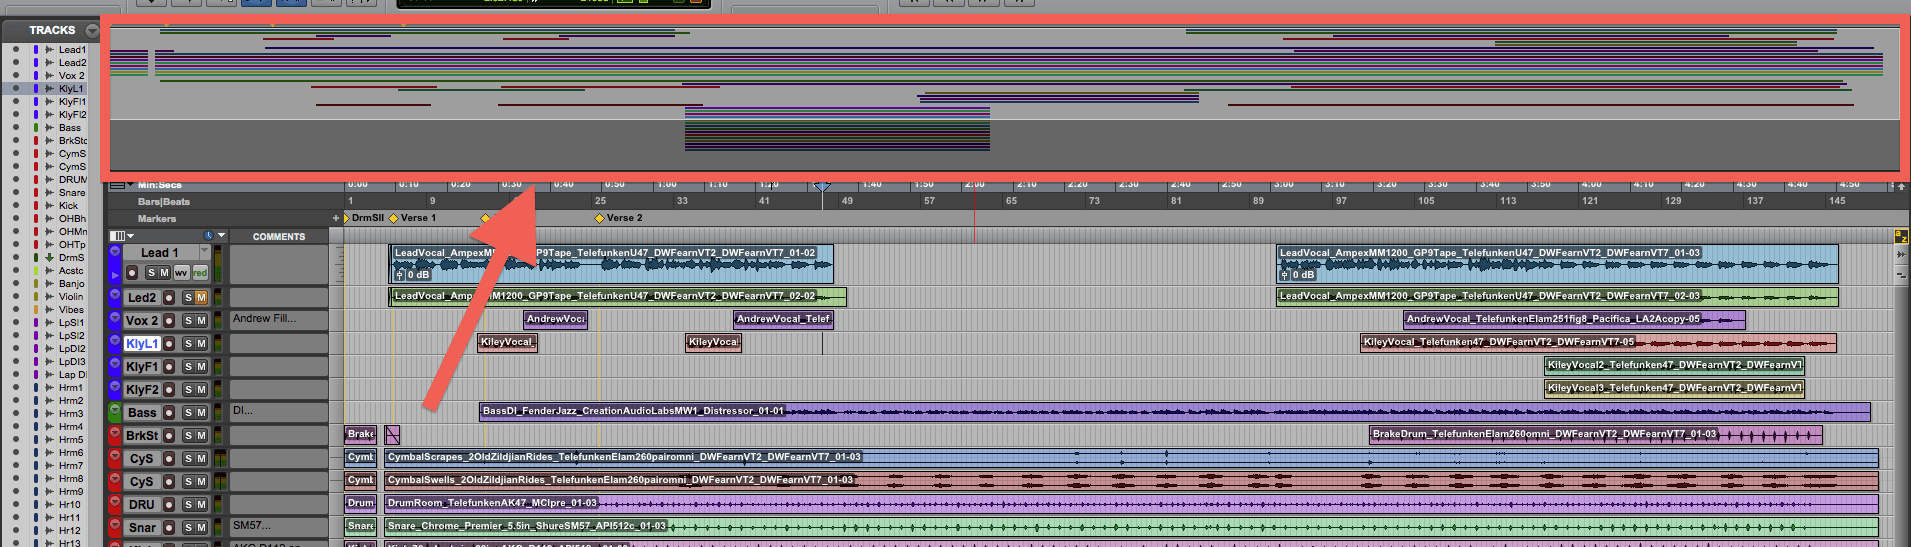 Universe View | Pro Tools Production